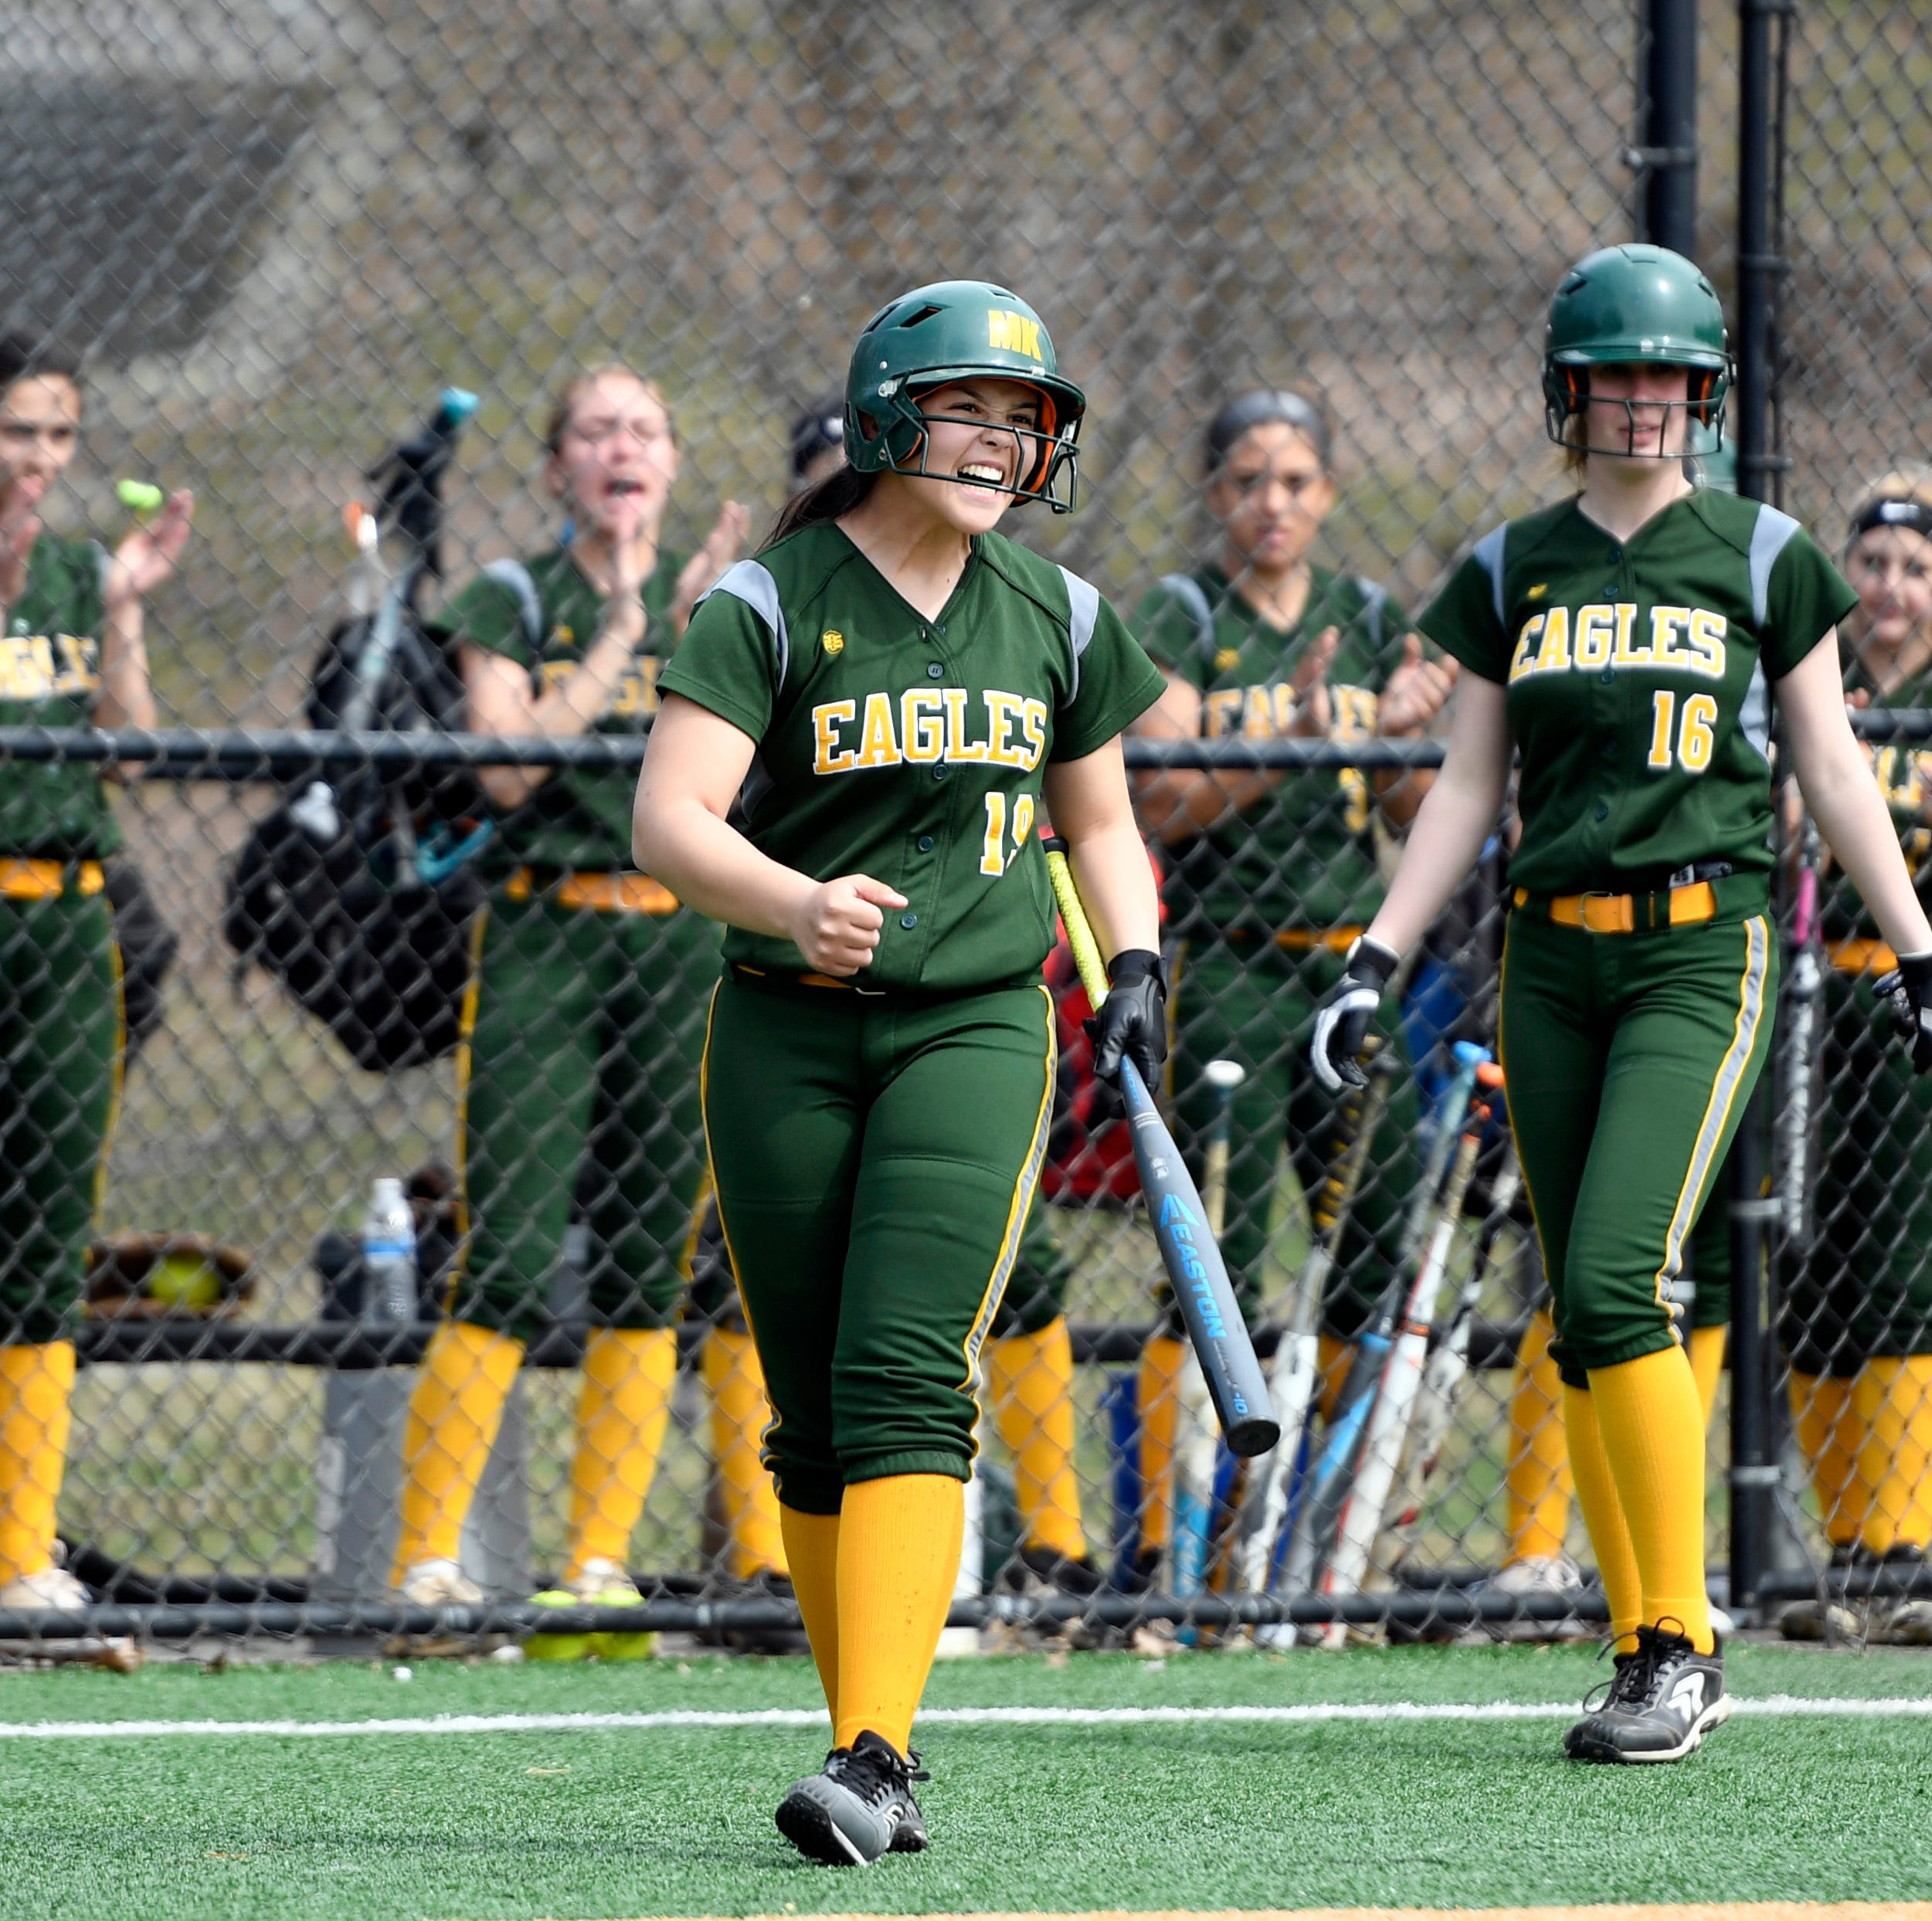 Morris Knolls' Kayla Turcios (19) yells to a teammate after a hit. IHA defeats Morris Knolls 8-5 to win the first-ever NFCA New Jersey Leadoff Classic on Sunday, April 7, 2019, in Newark. This first Leadoff Classic is in honor of Anthony LaRezza, the former Immaculate Heart Academy coach who passed away in February 2016 after battling cancer.